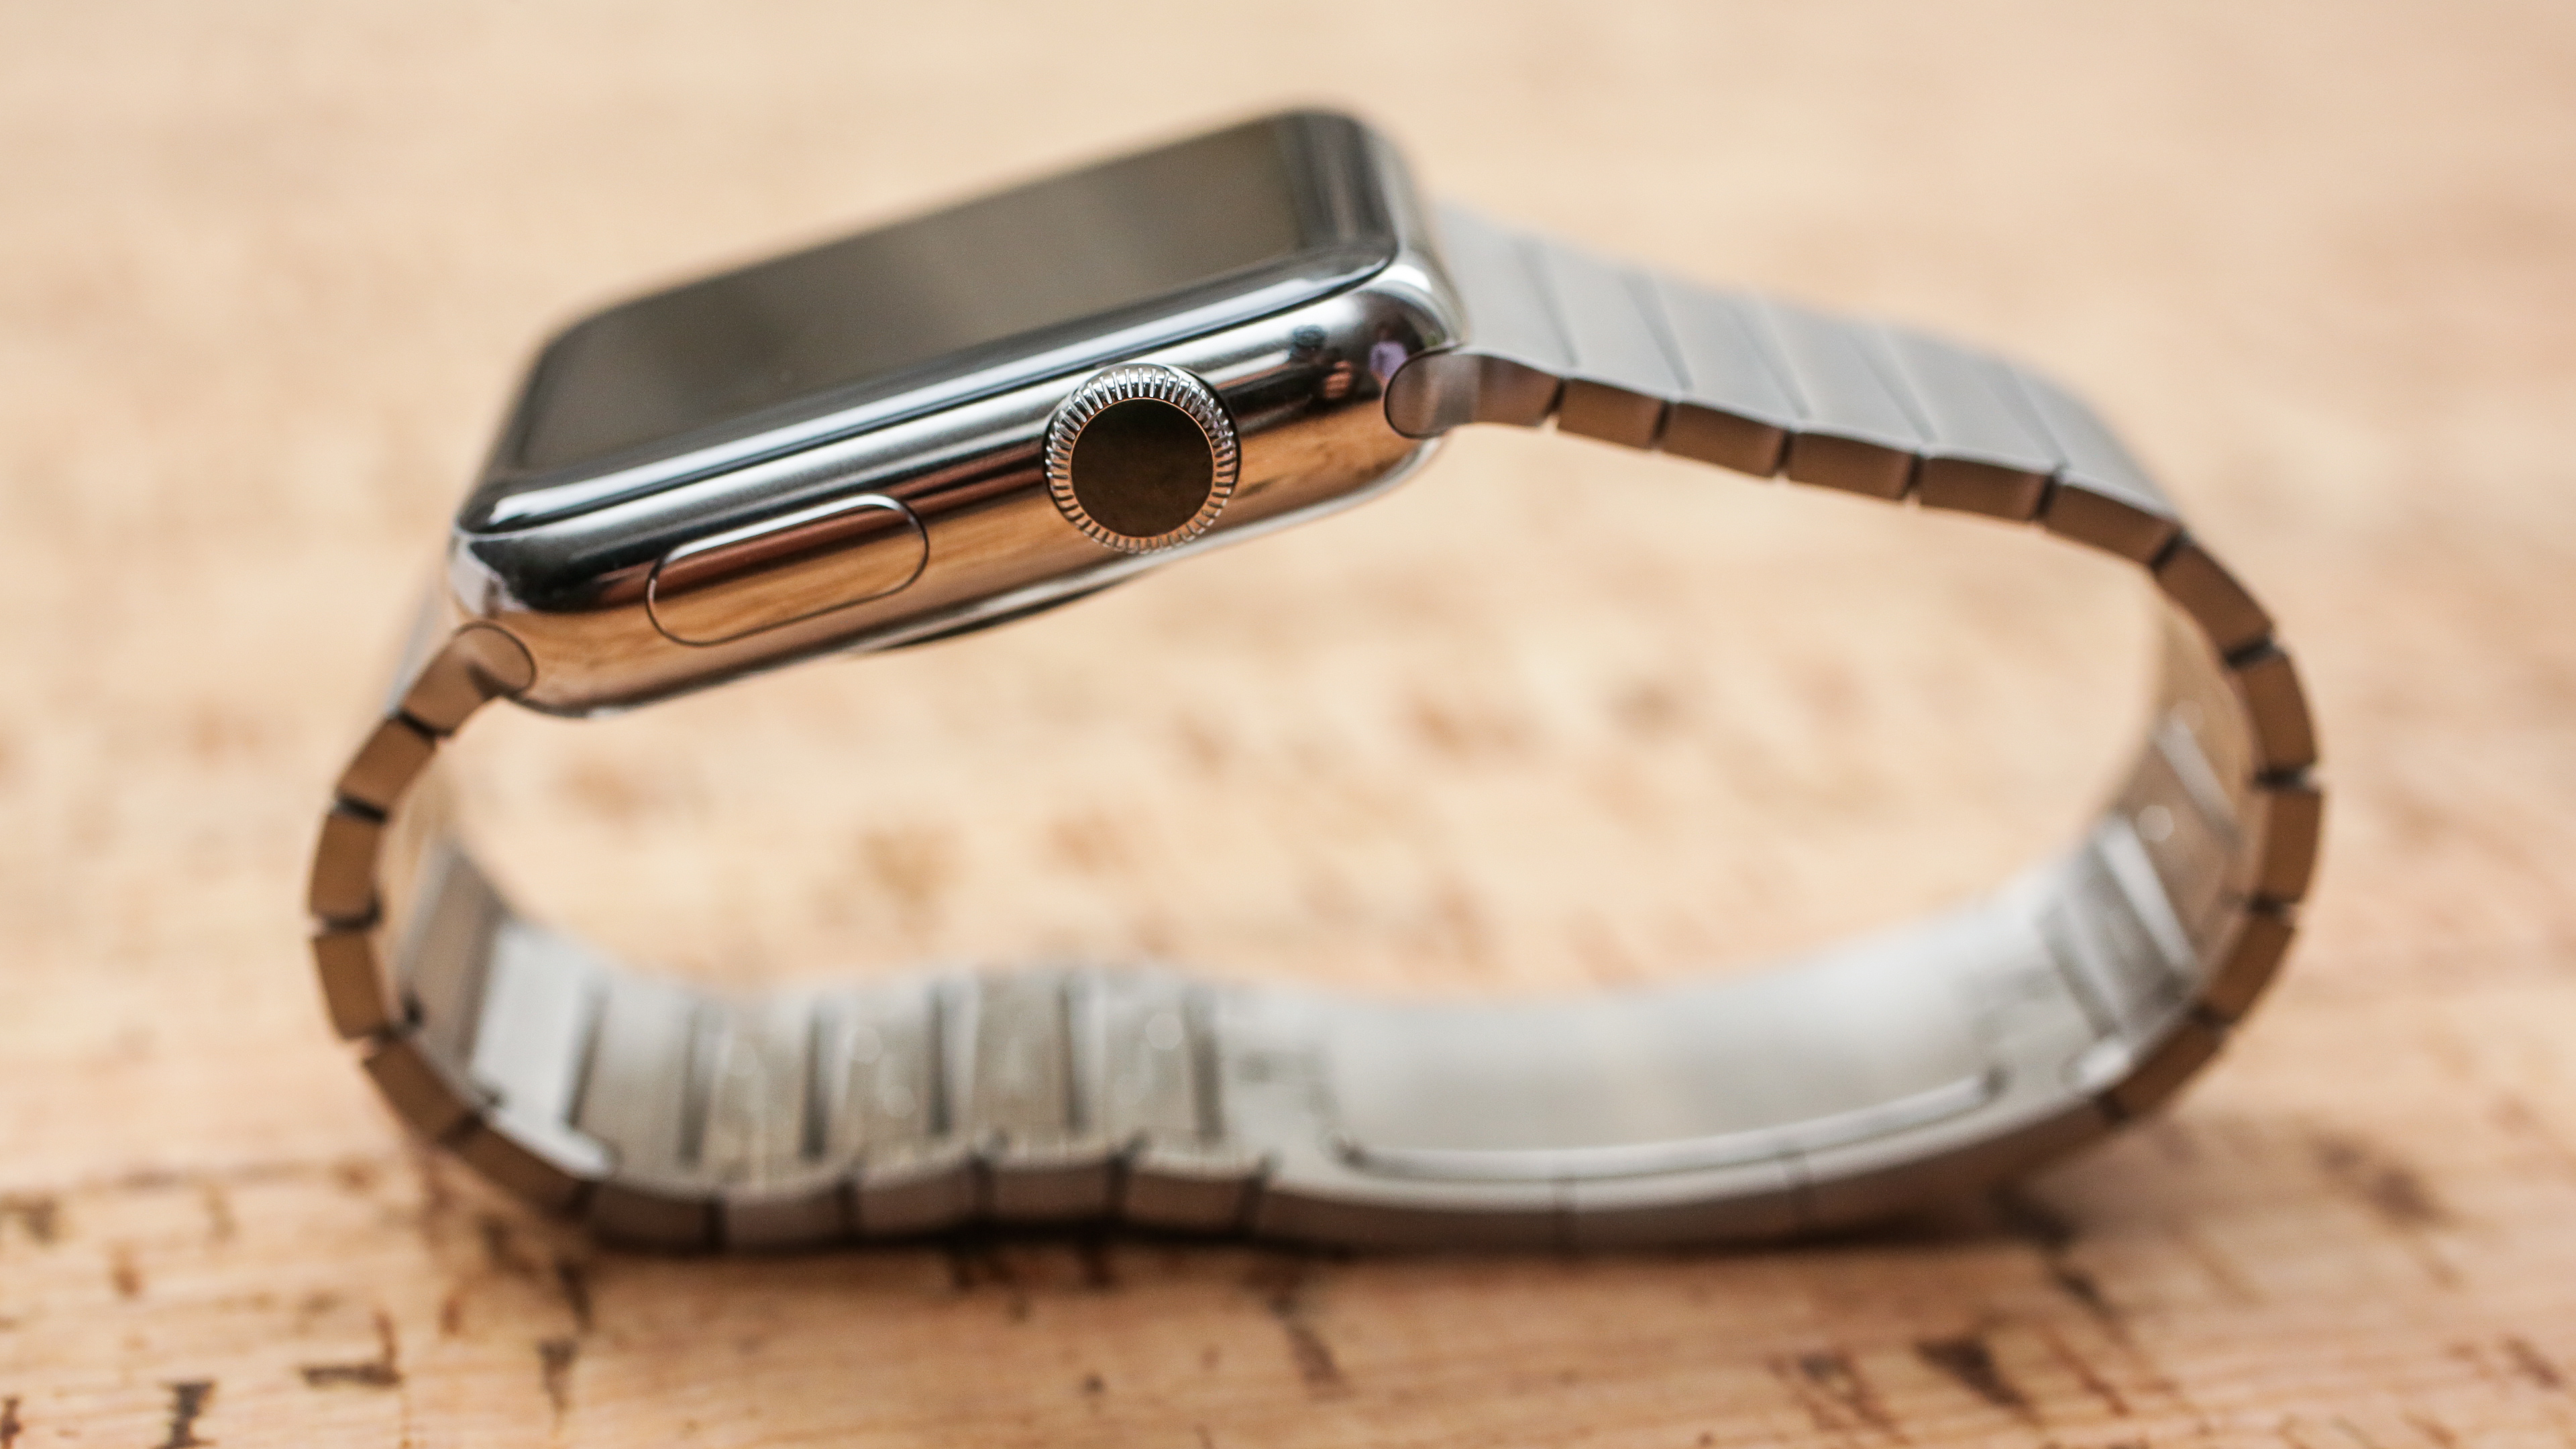 Apple has certain requirements for creating bands for the Apple Watch.